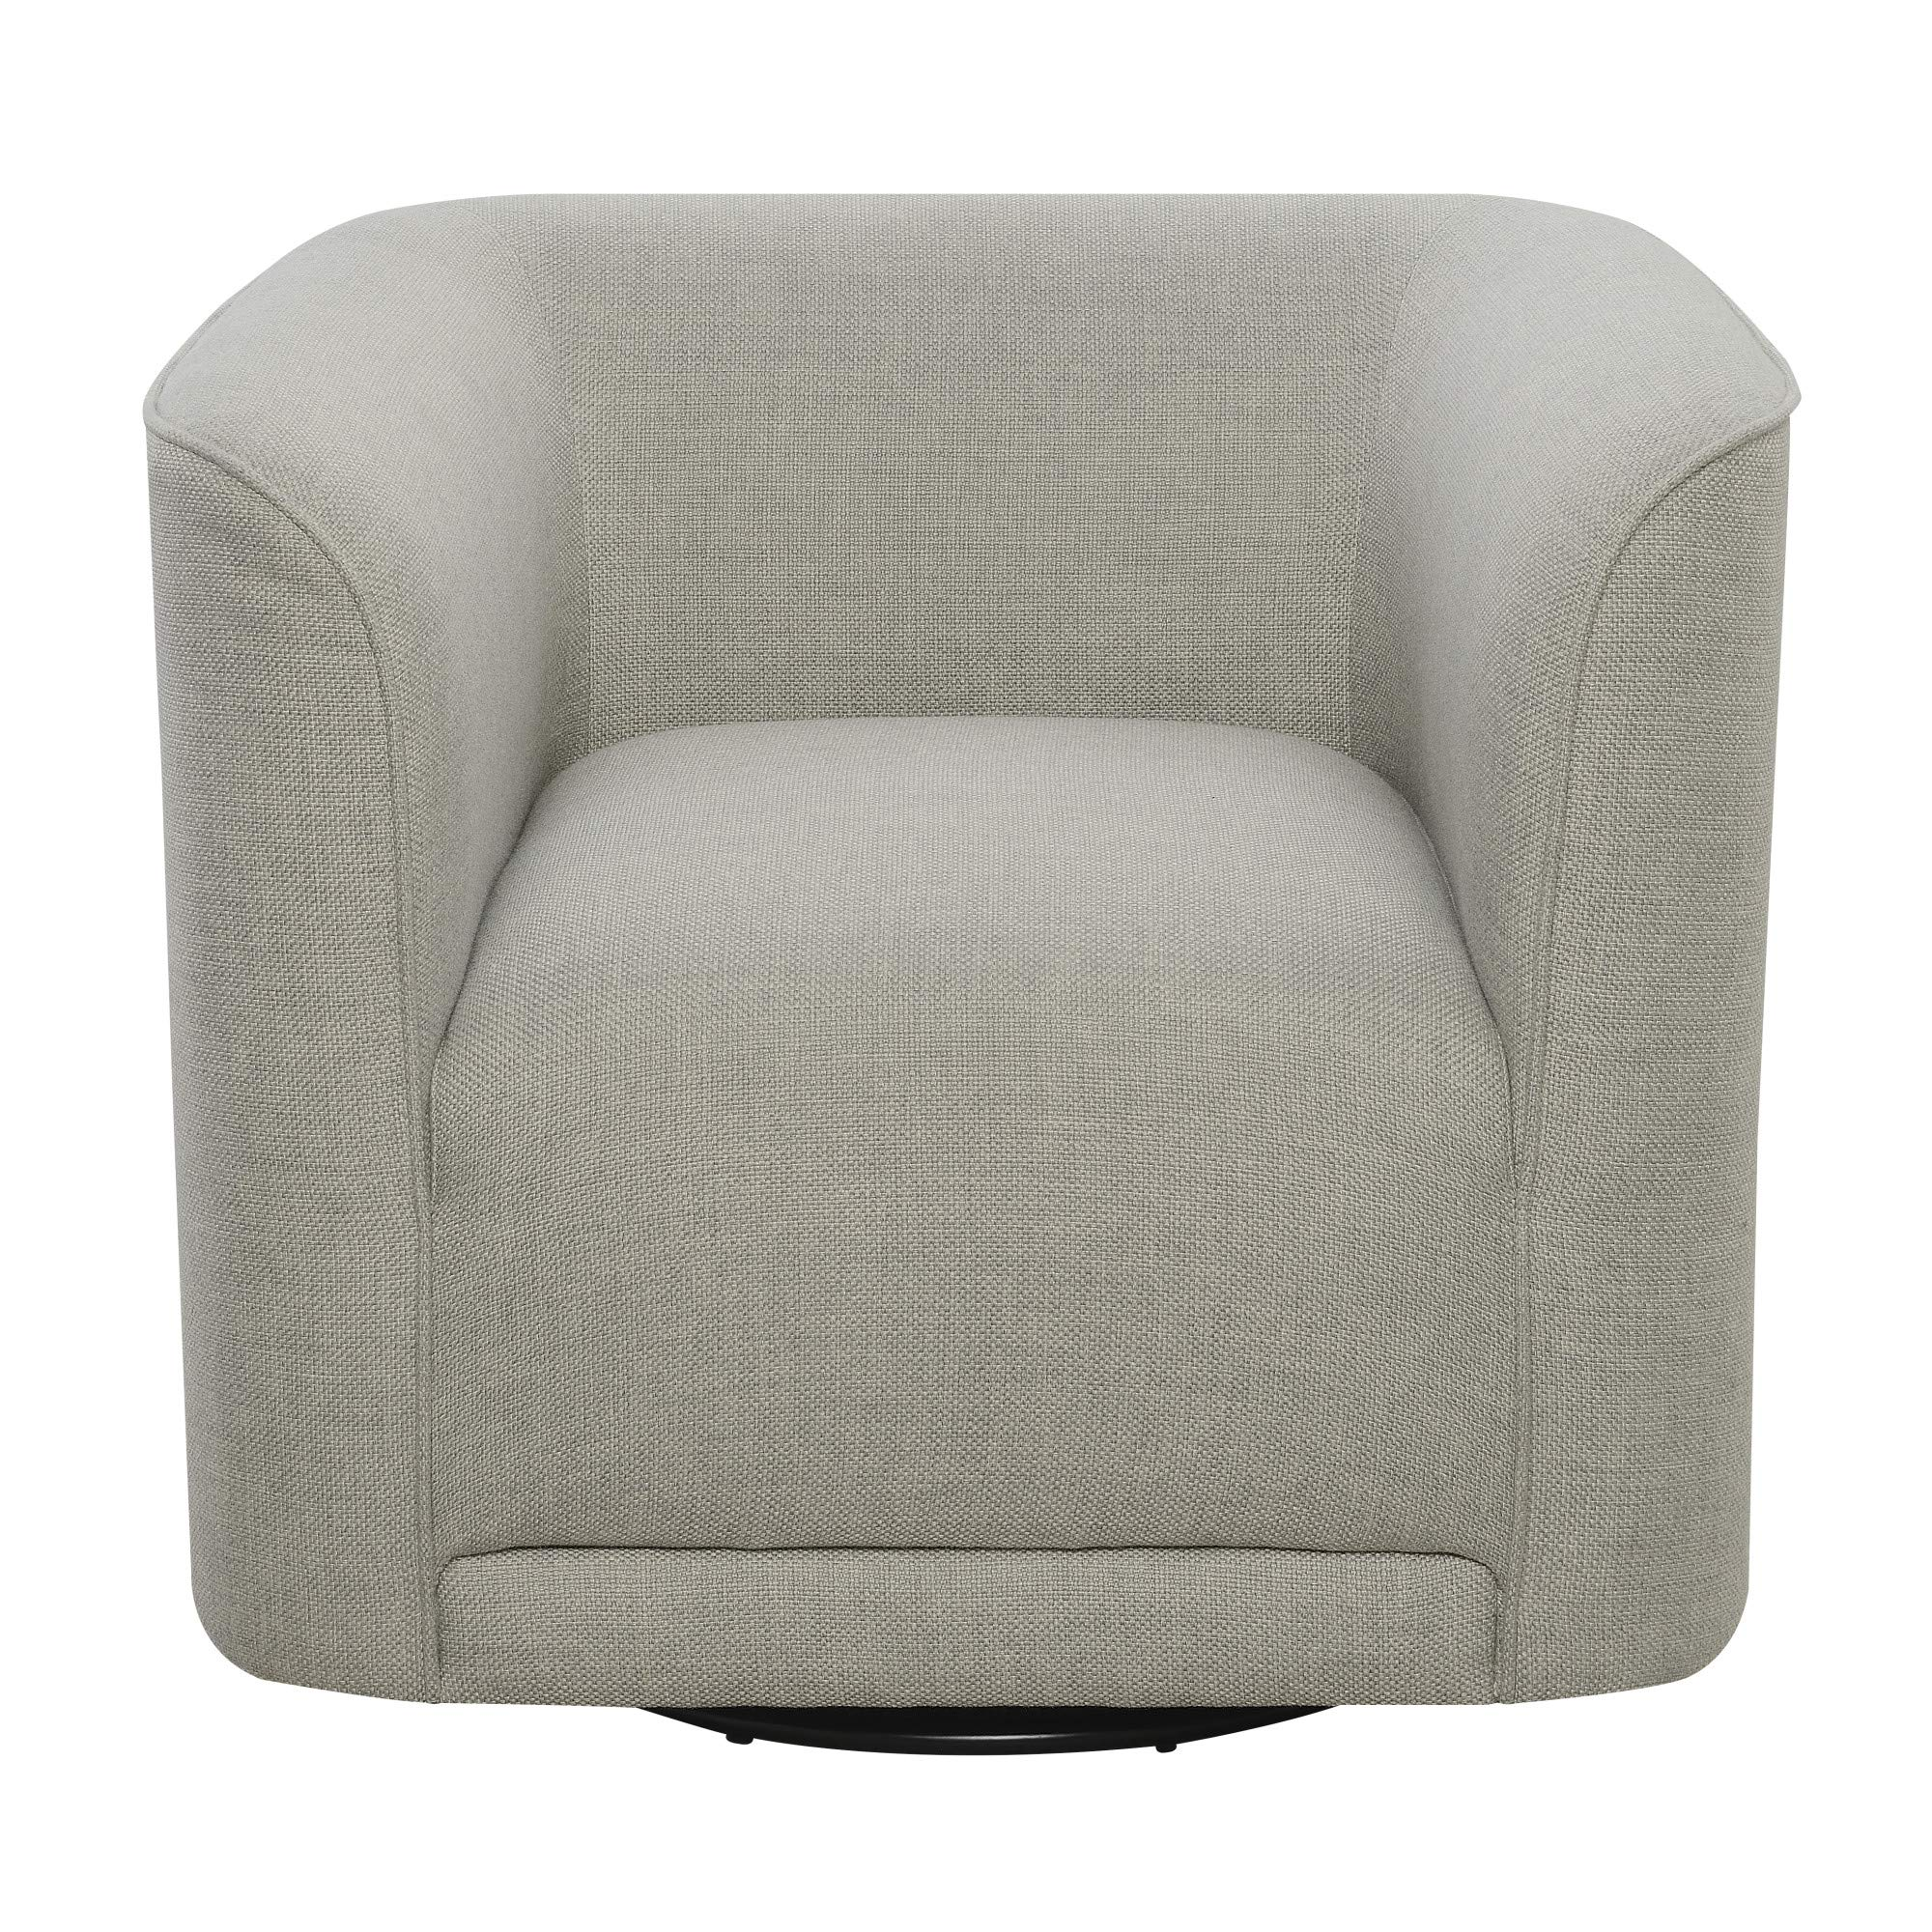 Juno Swivel Accent Chair in London Fog with 360° Swivel And U Shape, by Artum Hill